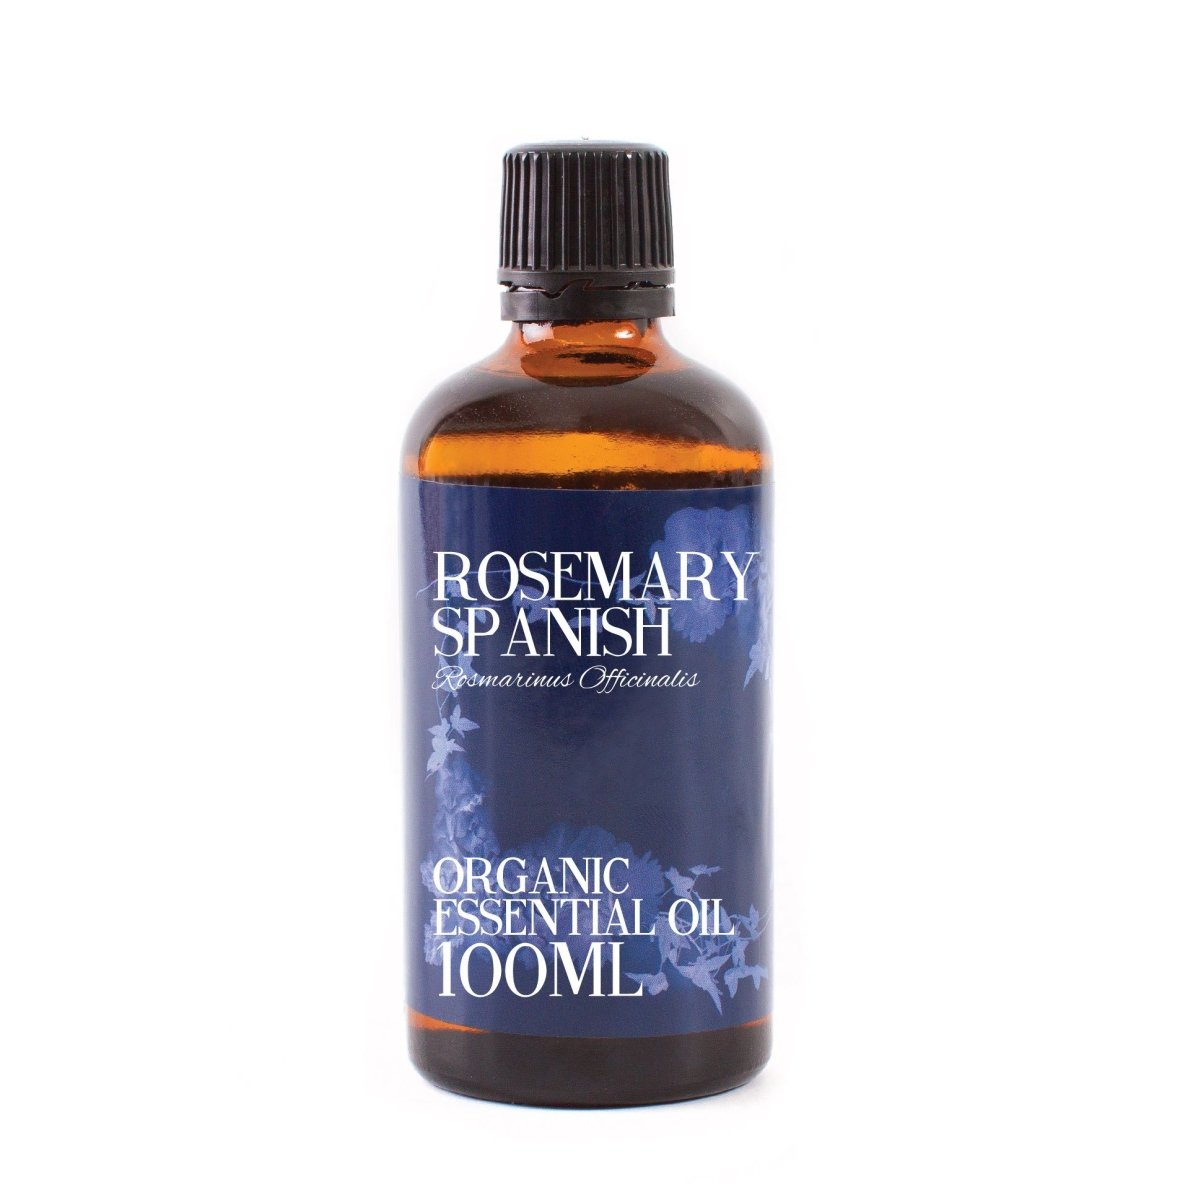 Rosemary Spanish Organic Essential Oil - Mystic Moments UK